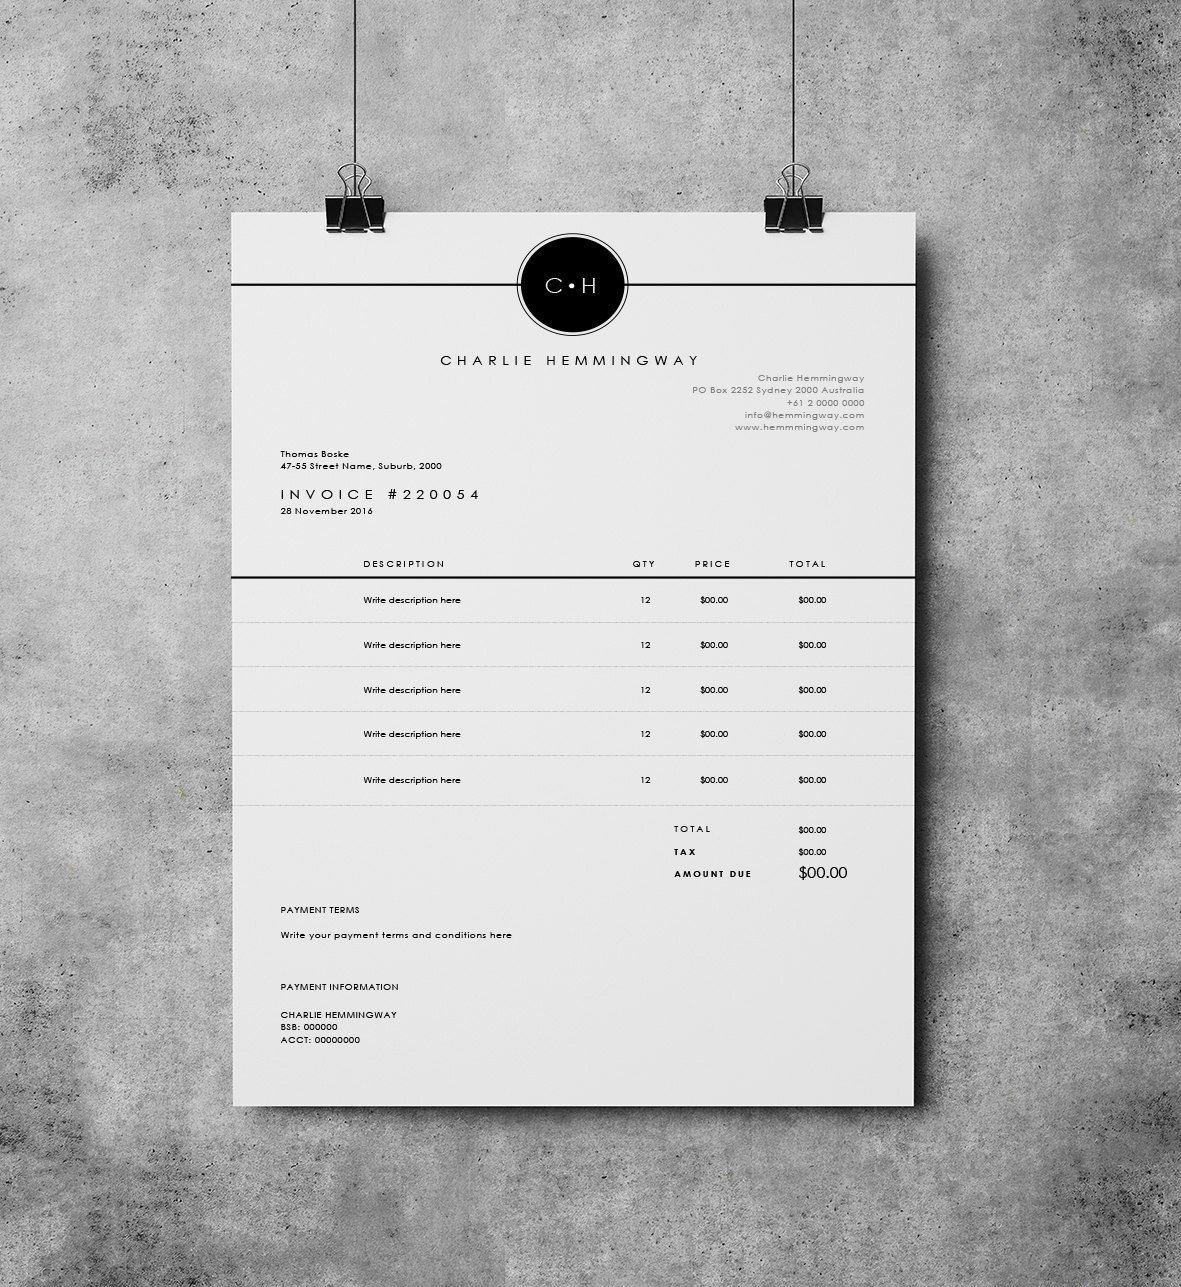 Invoice Template Invoice Design Receipt MS Word Invoice - Corporate invoice template